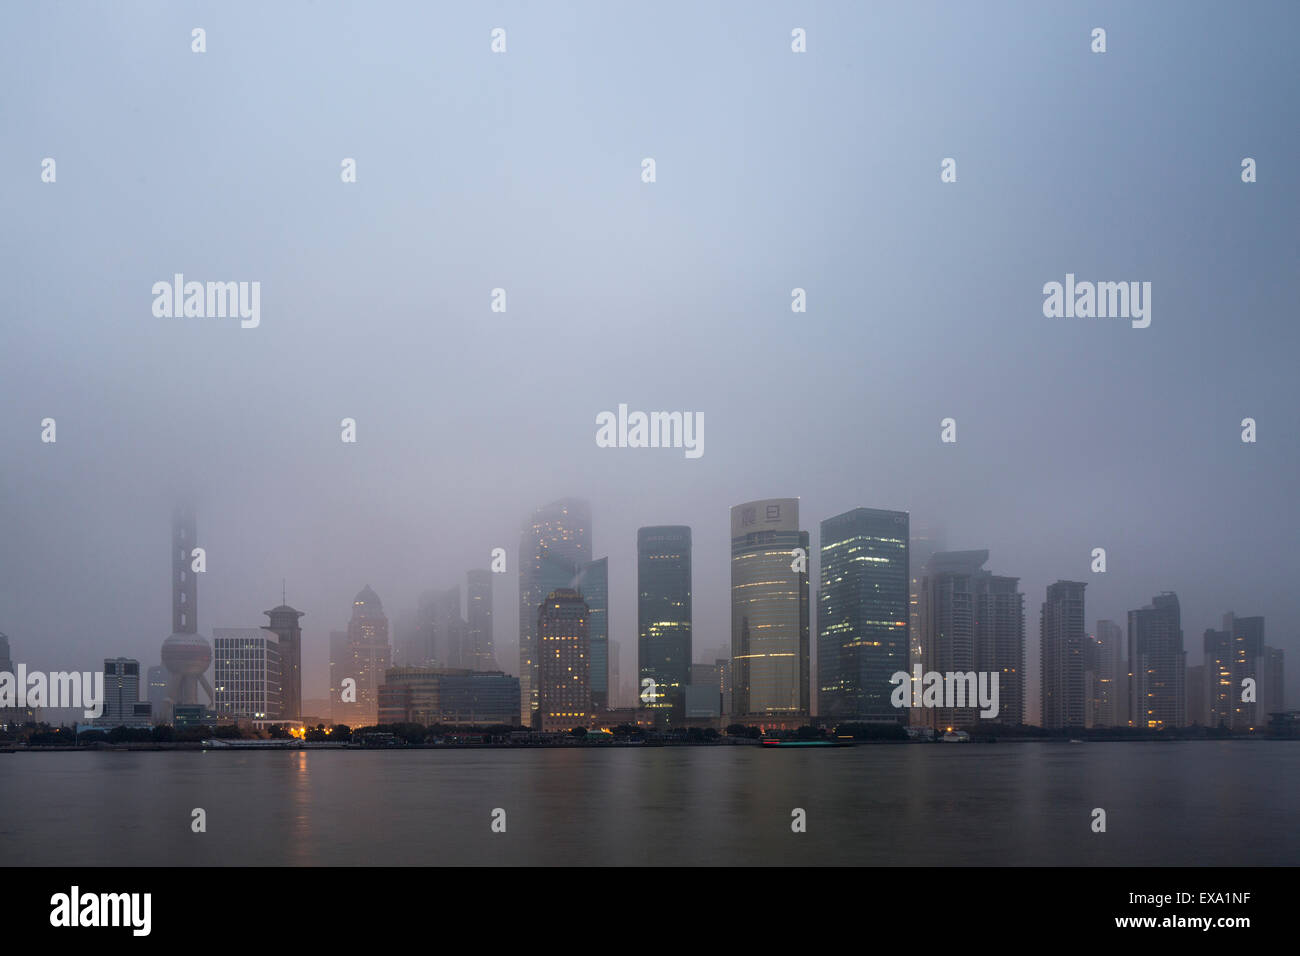 China, Shanghai, Skyscrapers in skyline of Pudong District lost in low clouds along Huangpu River on winter morning Stock Photo